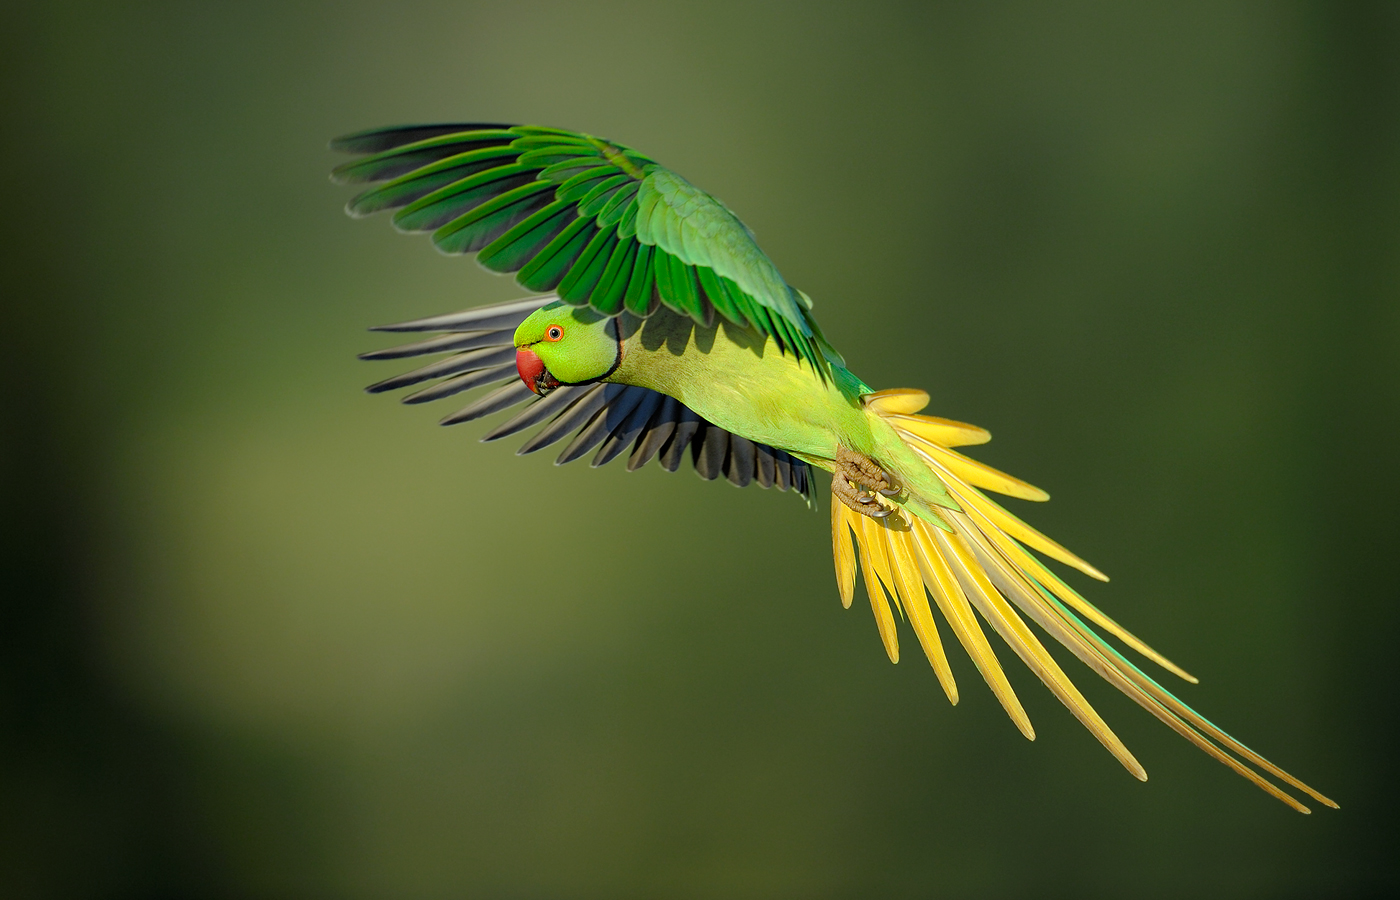 flight_vladimir-michael-kogan_rose-ringed-parakeet_israel_d3v7655